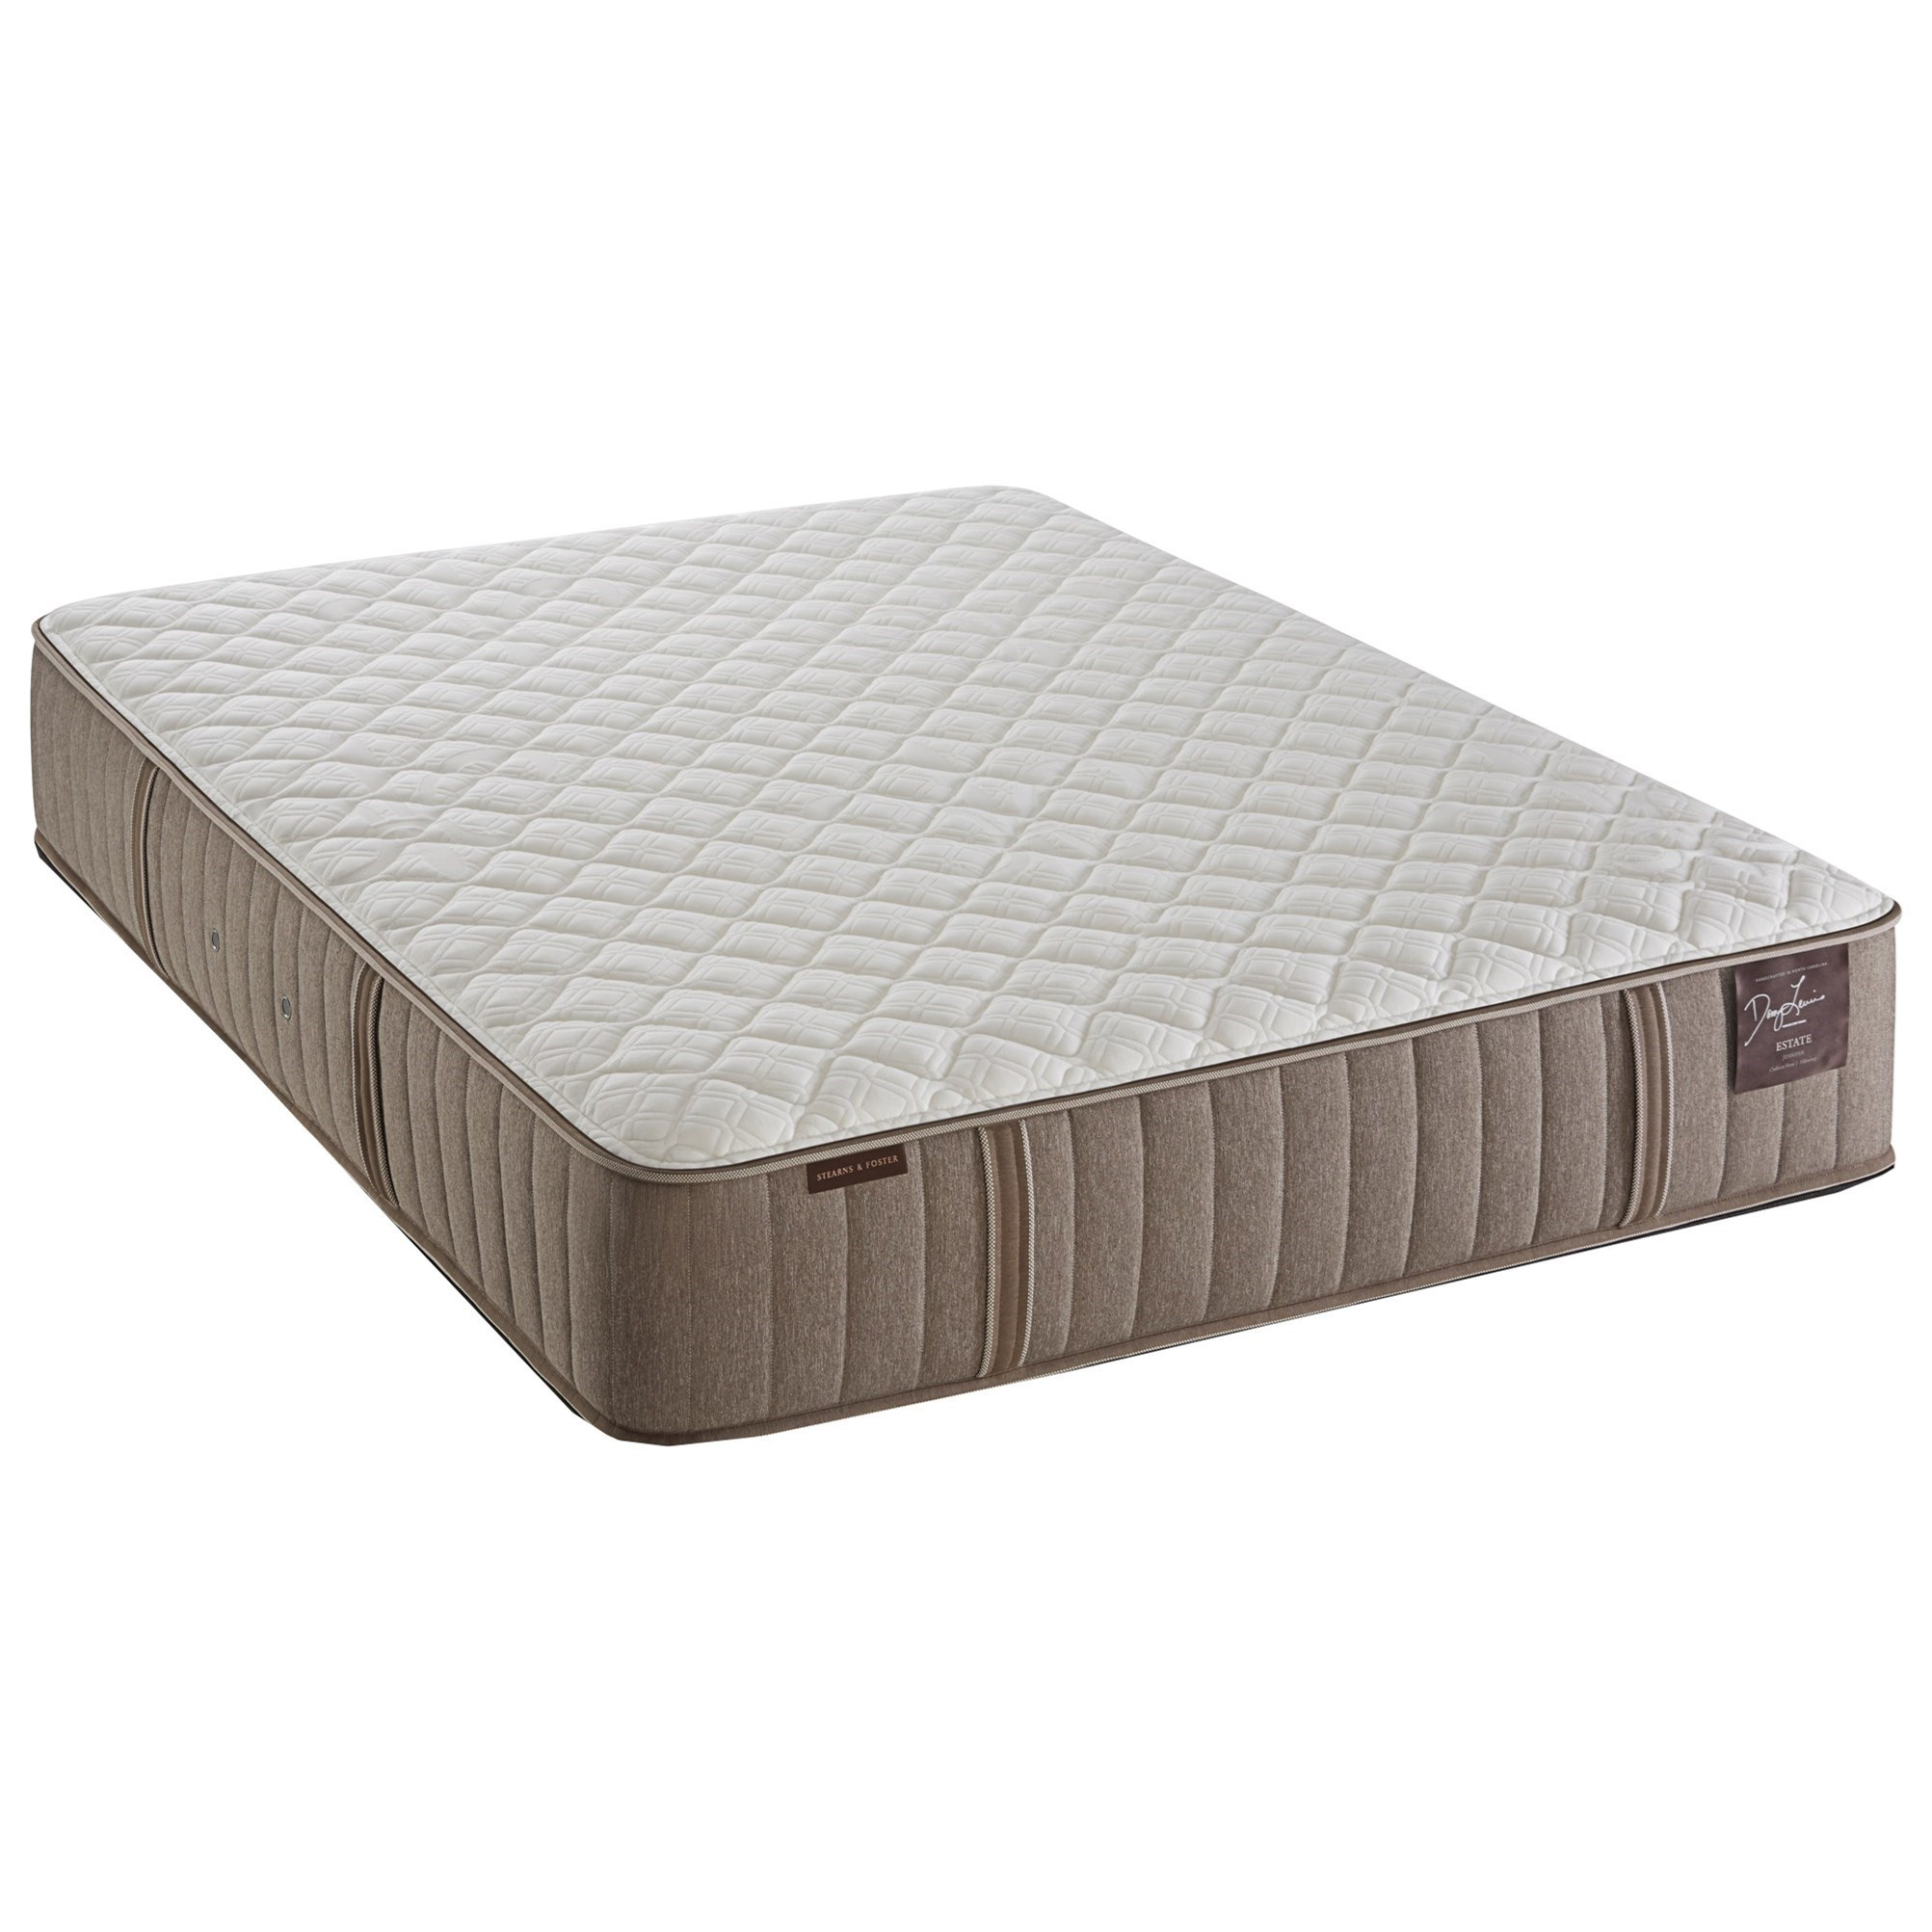 Stearns foster scarborough twin extra long ultra firm mattress rotmans mattresses Twin mattress xl